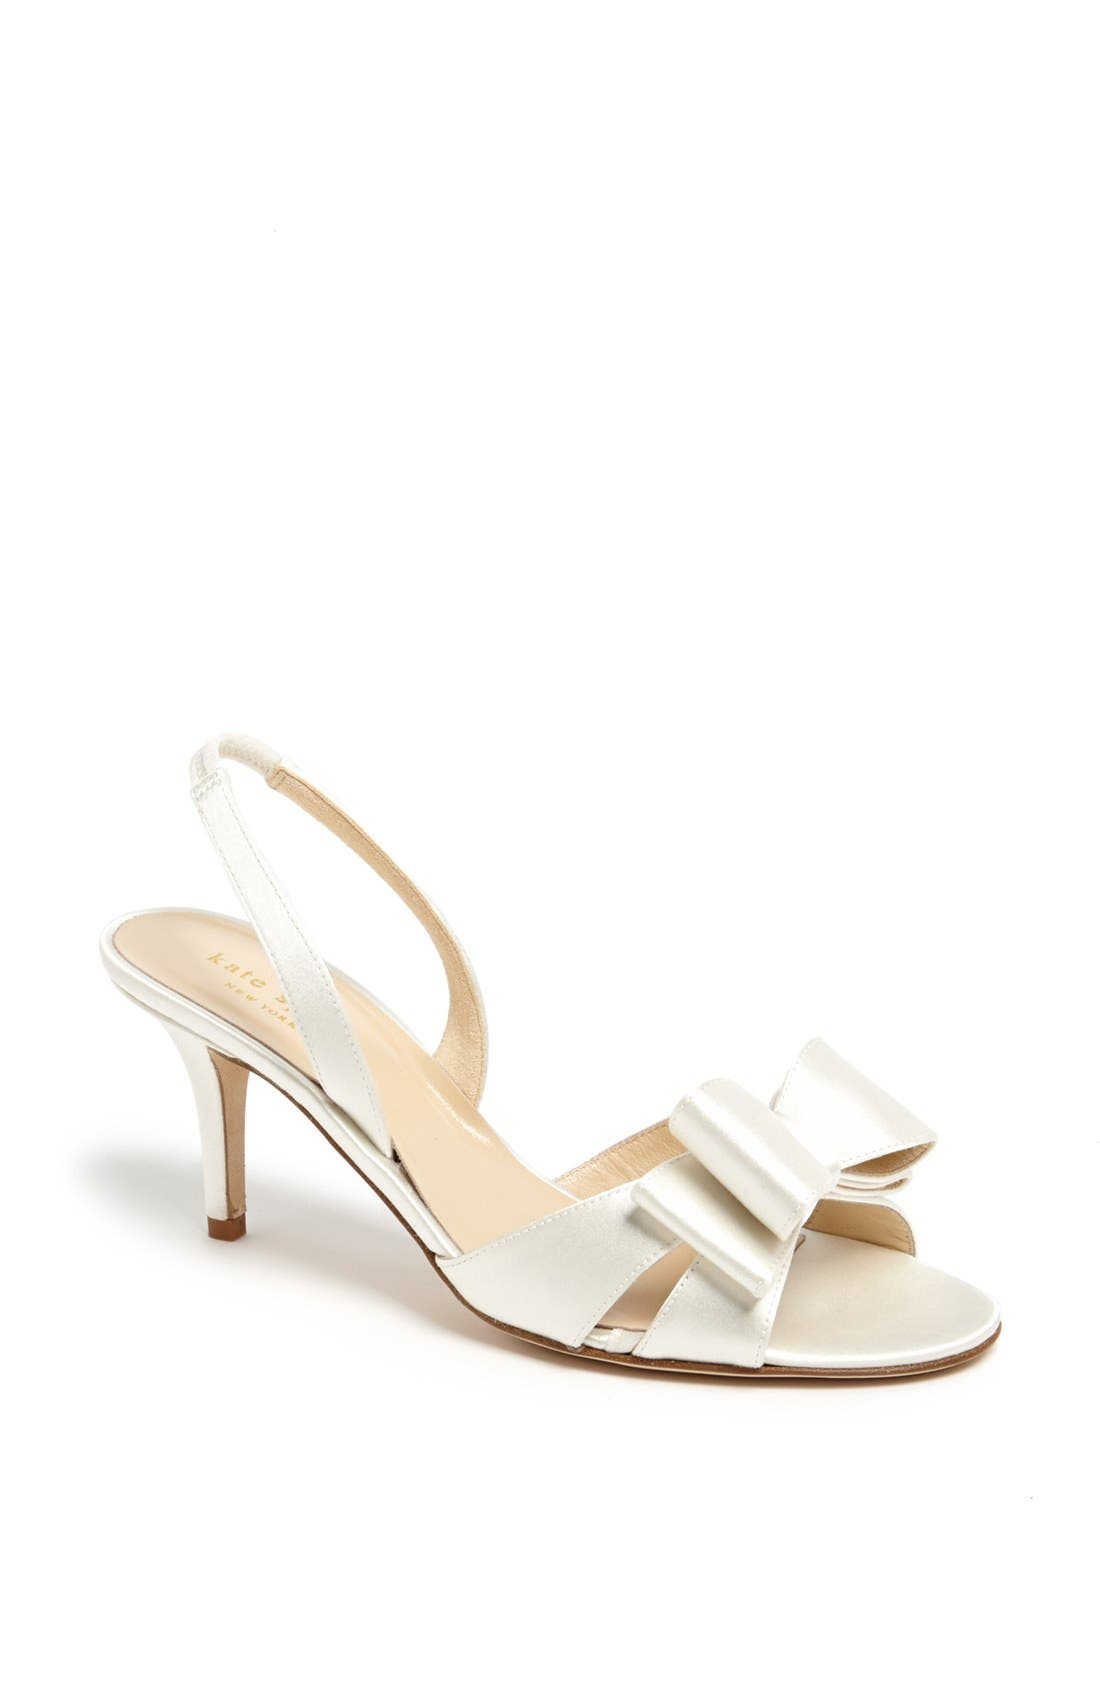 Alternate Image 1 Selected - kate spade new york 'micah' satin sandal